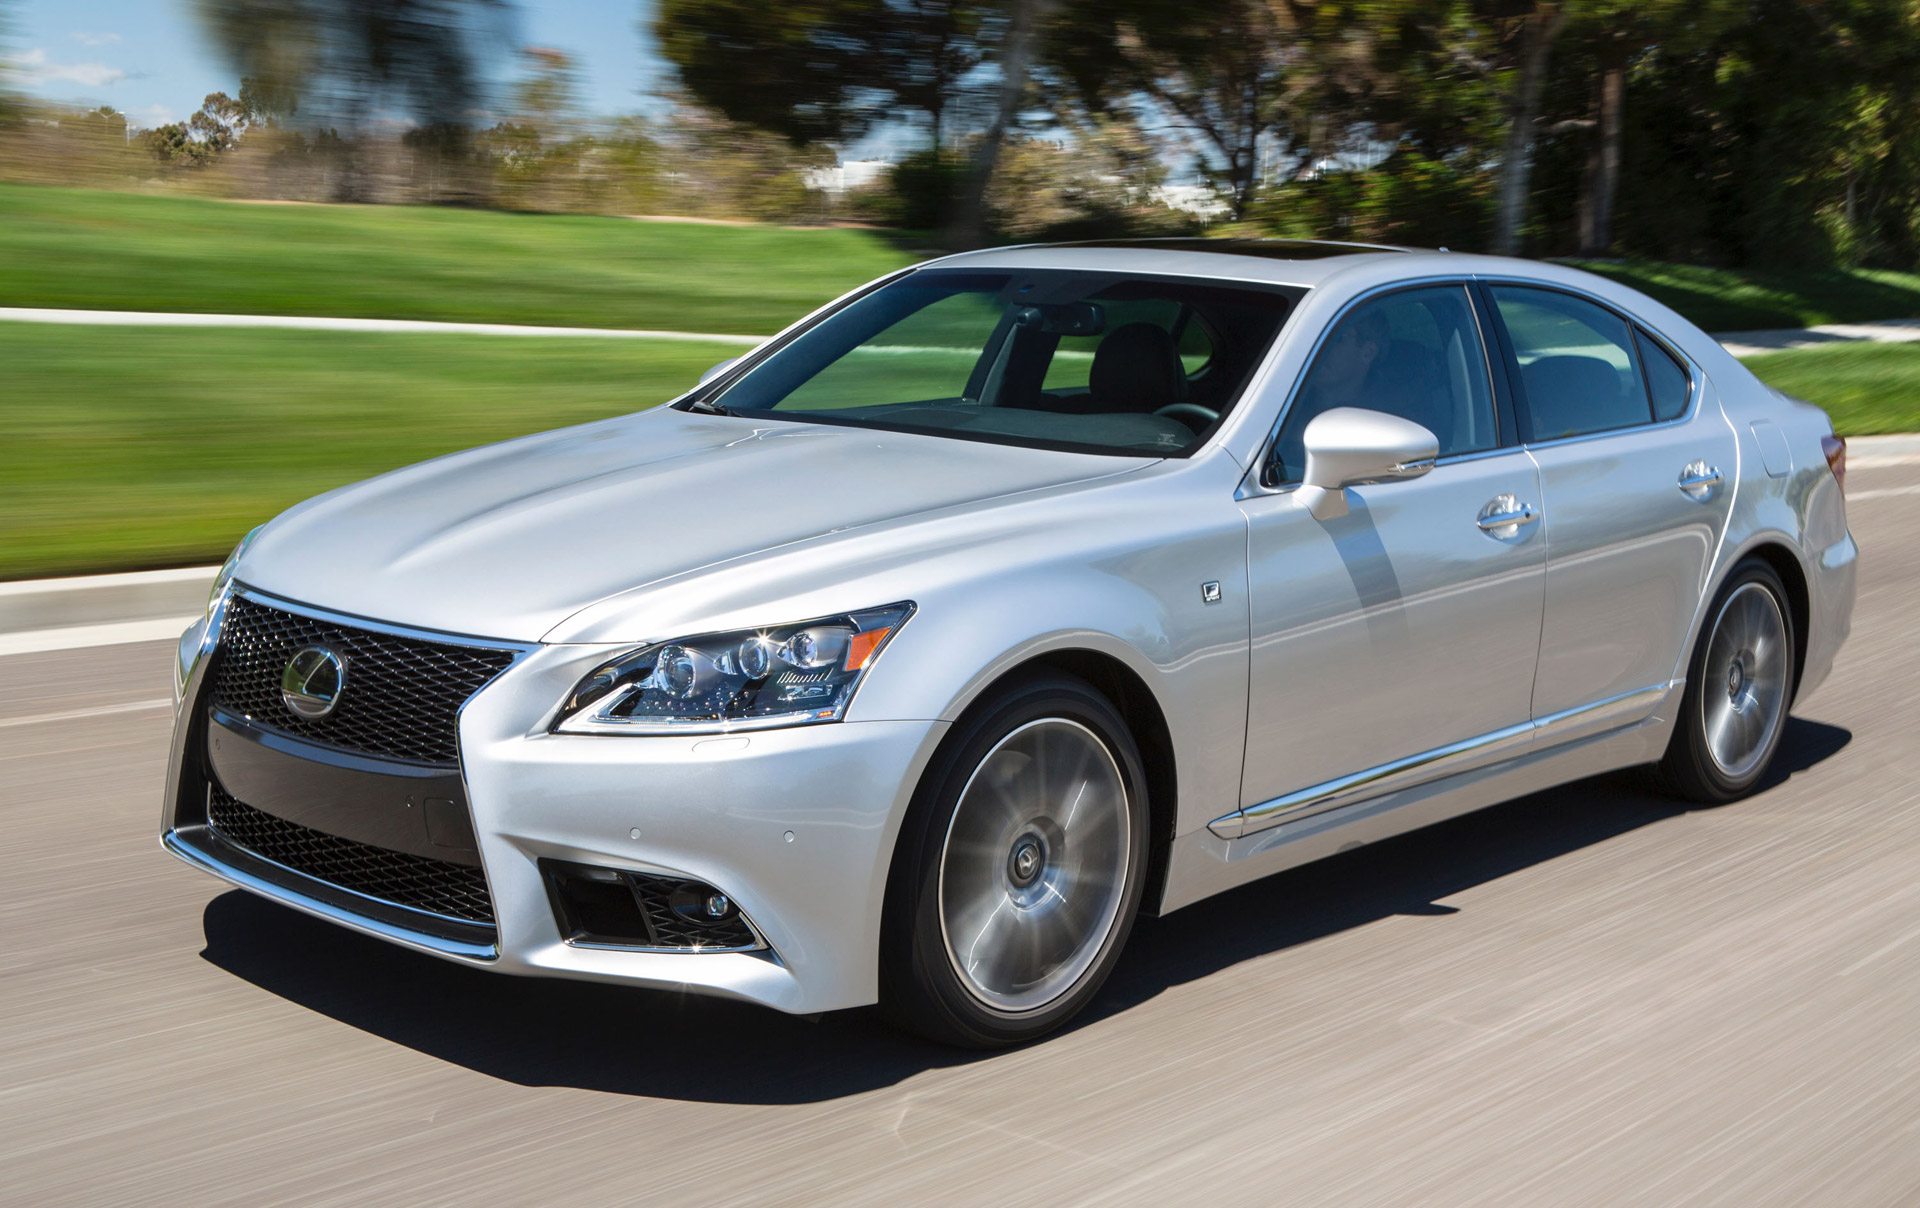 2016 lexus ls 460 review ratings specs prices and photos the car connection. Black Bedroom Furniture Sets. Home Design Ideas